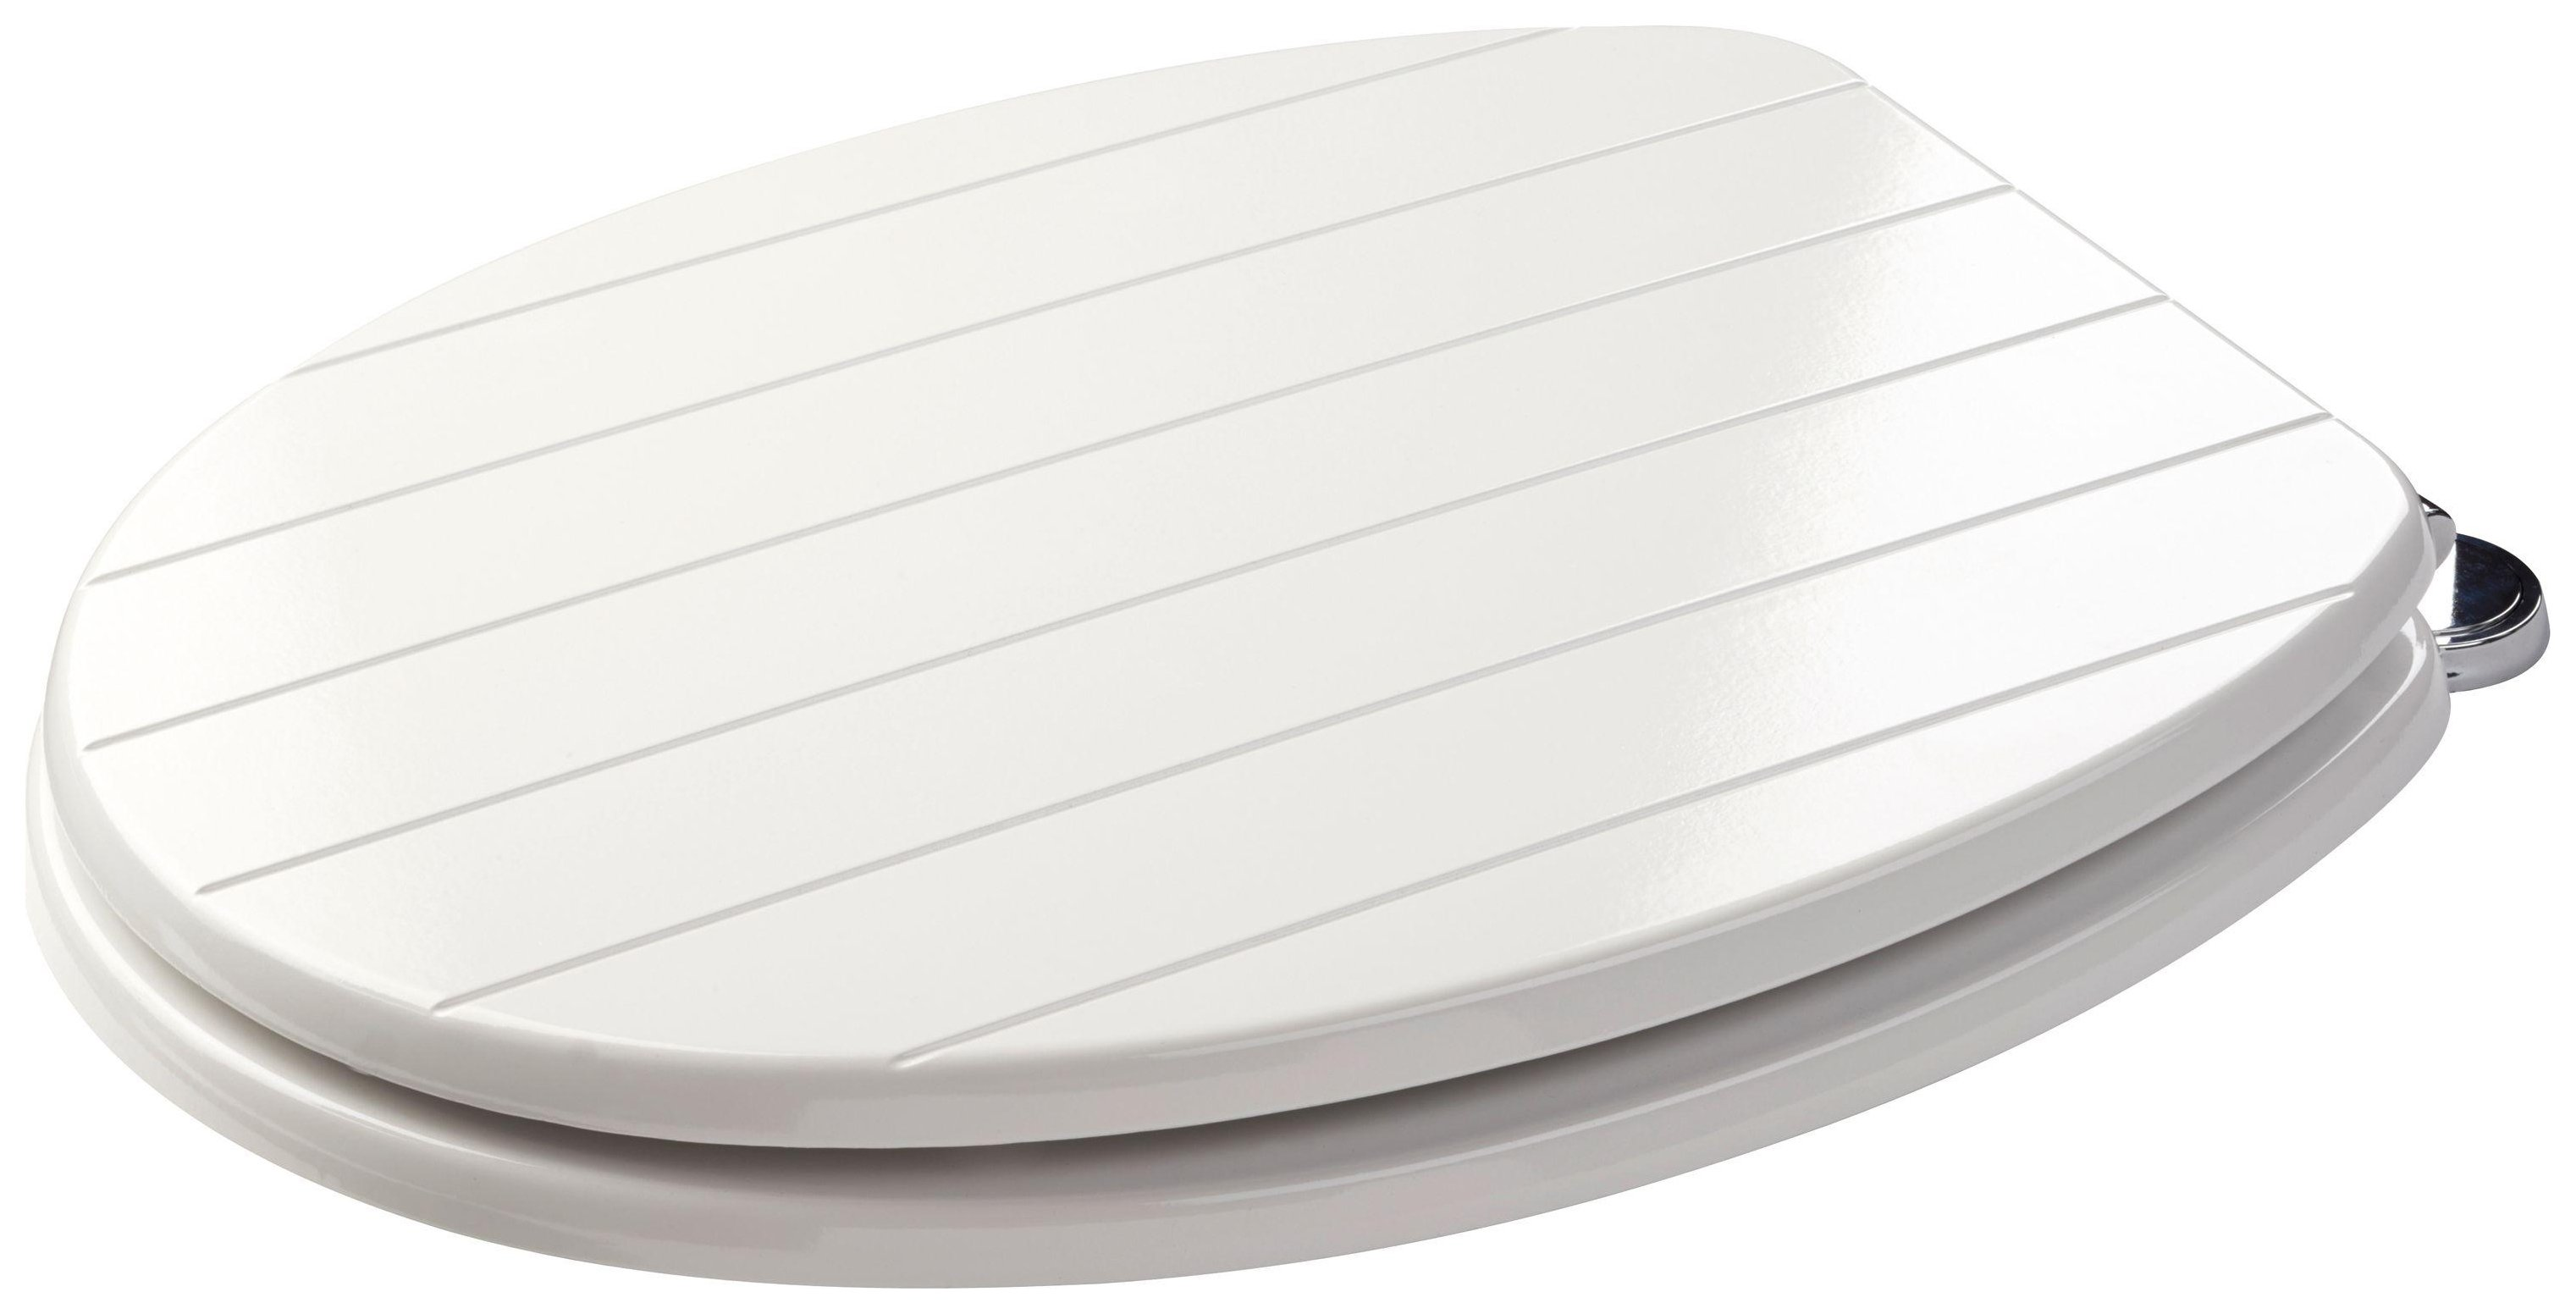 Image of Croydex - Sit Tight New England - Toilet Seat - White